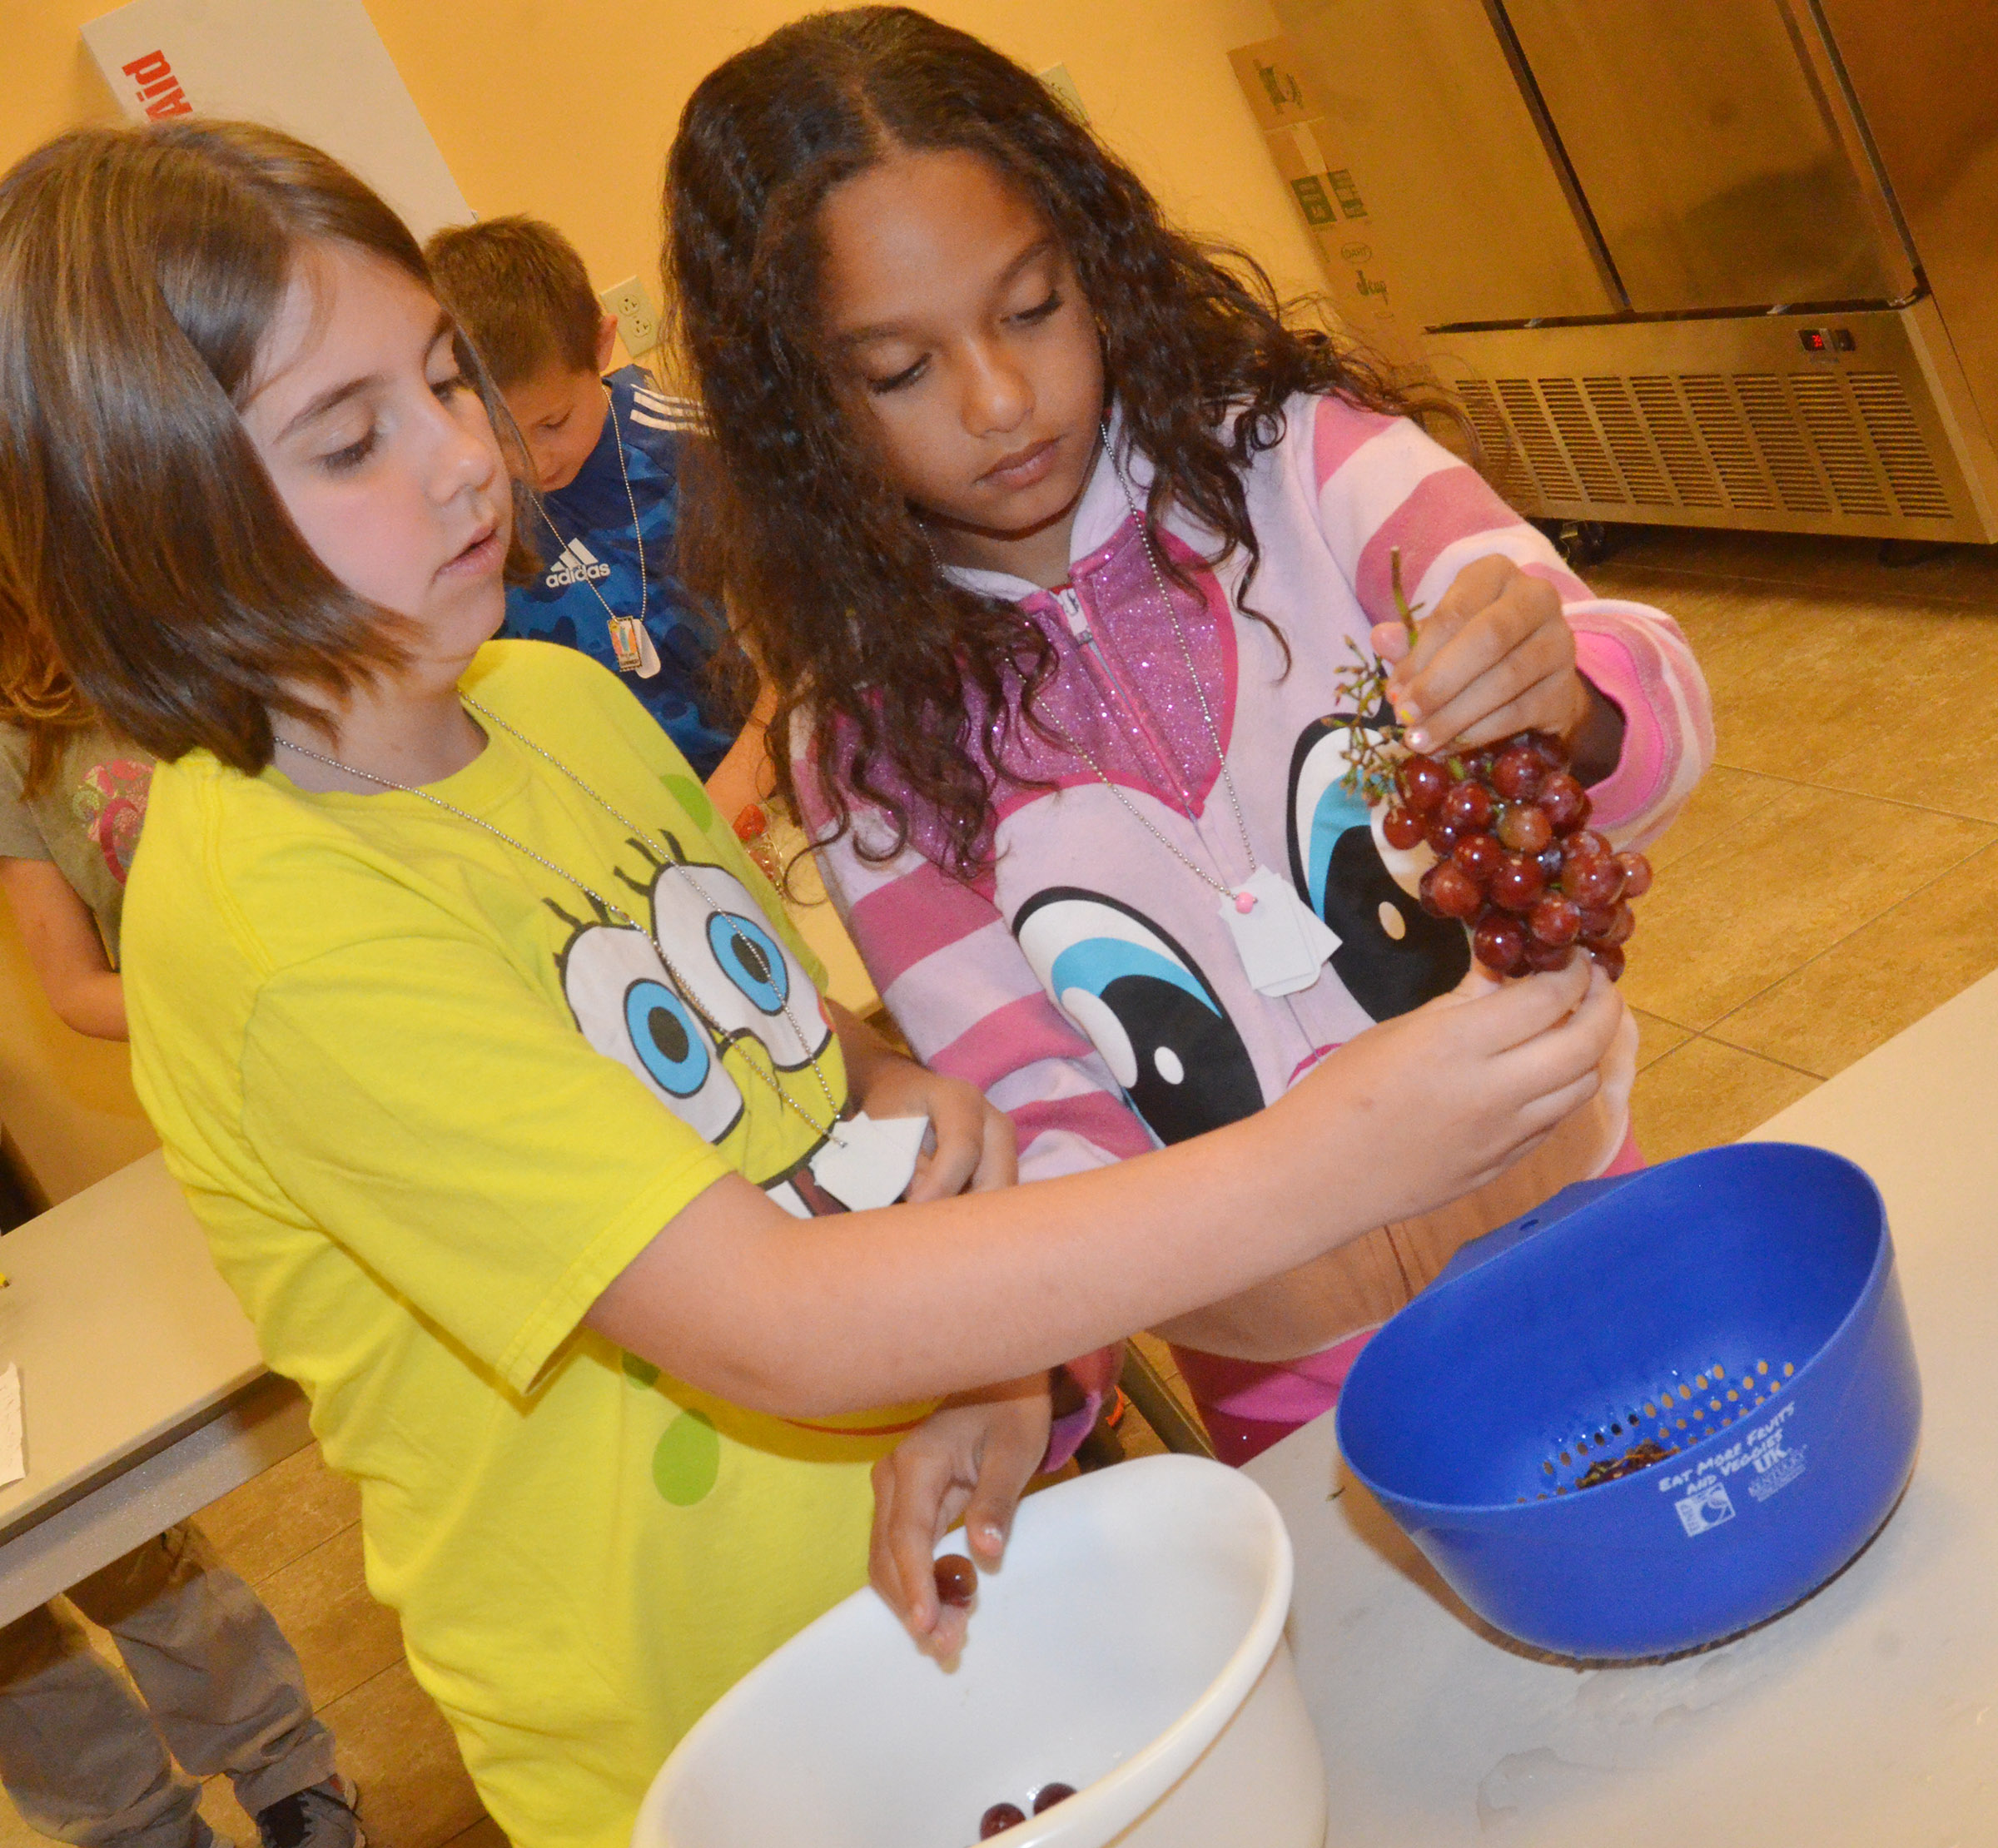 CES third-graders Adrianna Garvin, at left, and Alyssa Knezevic prepare grapes as they make a healthy snack.